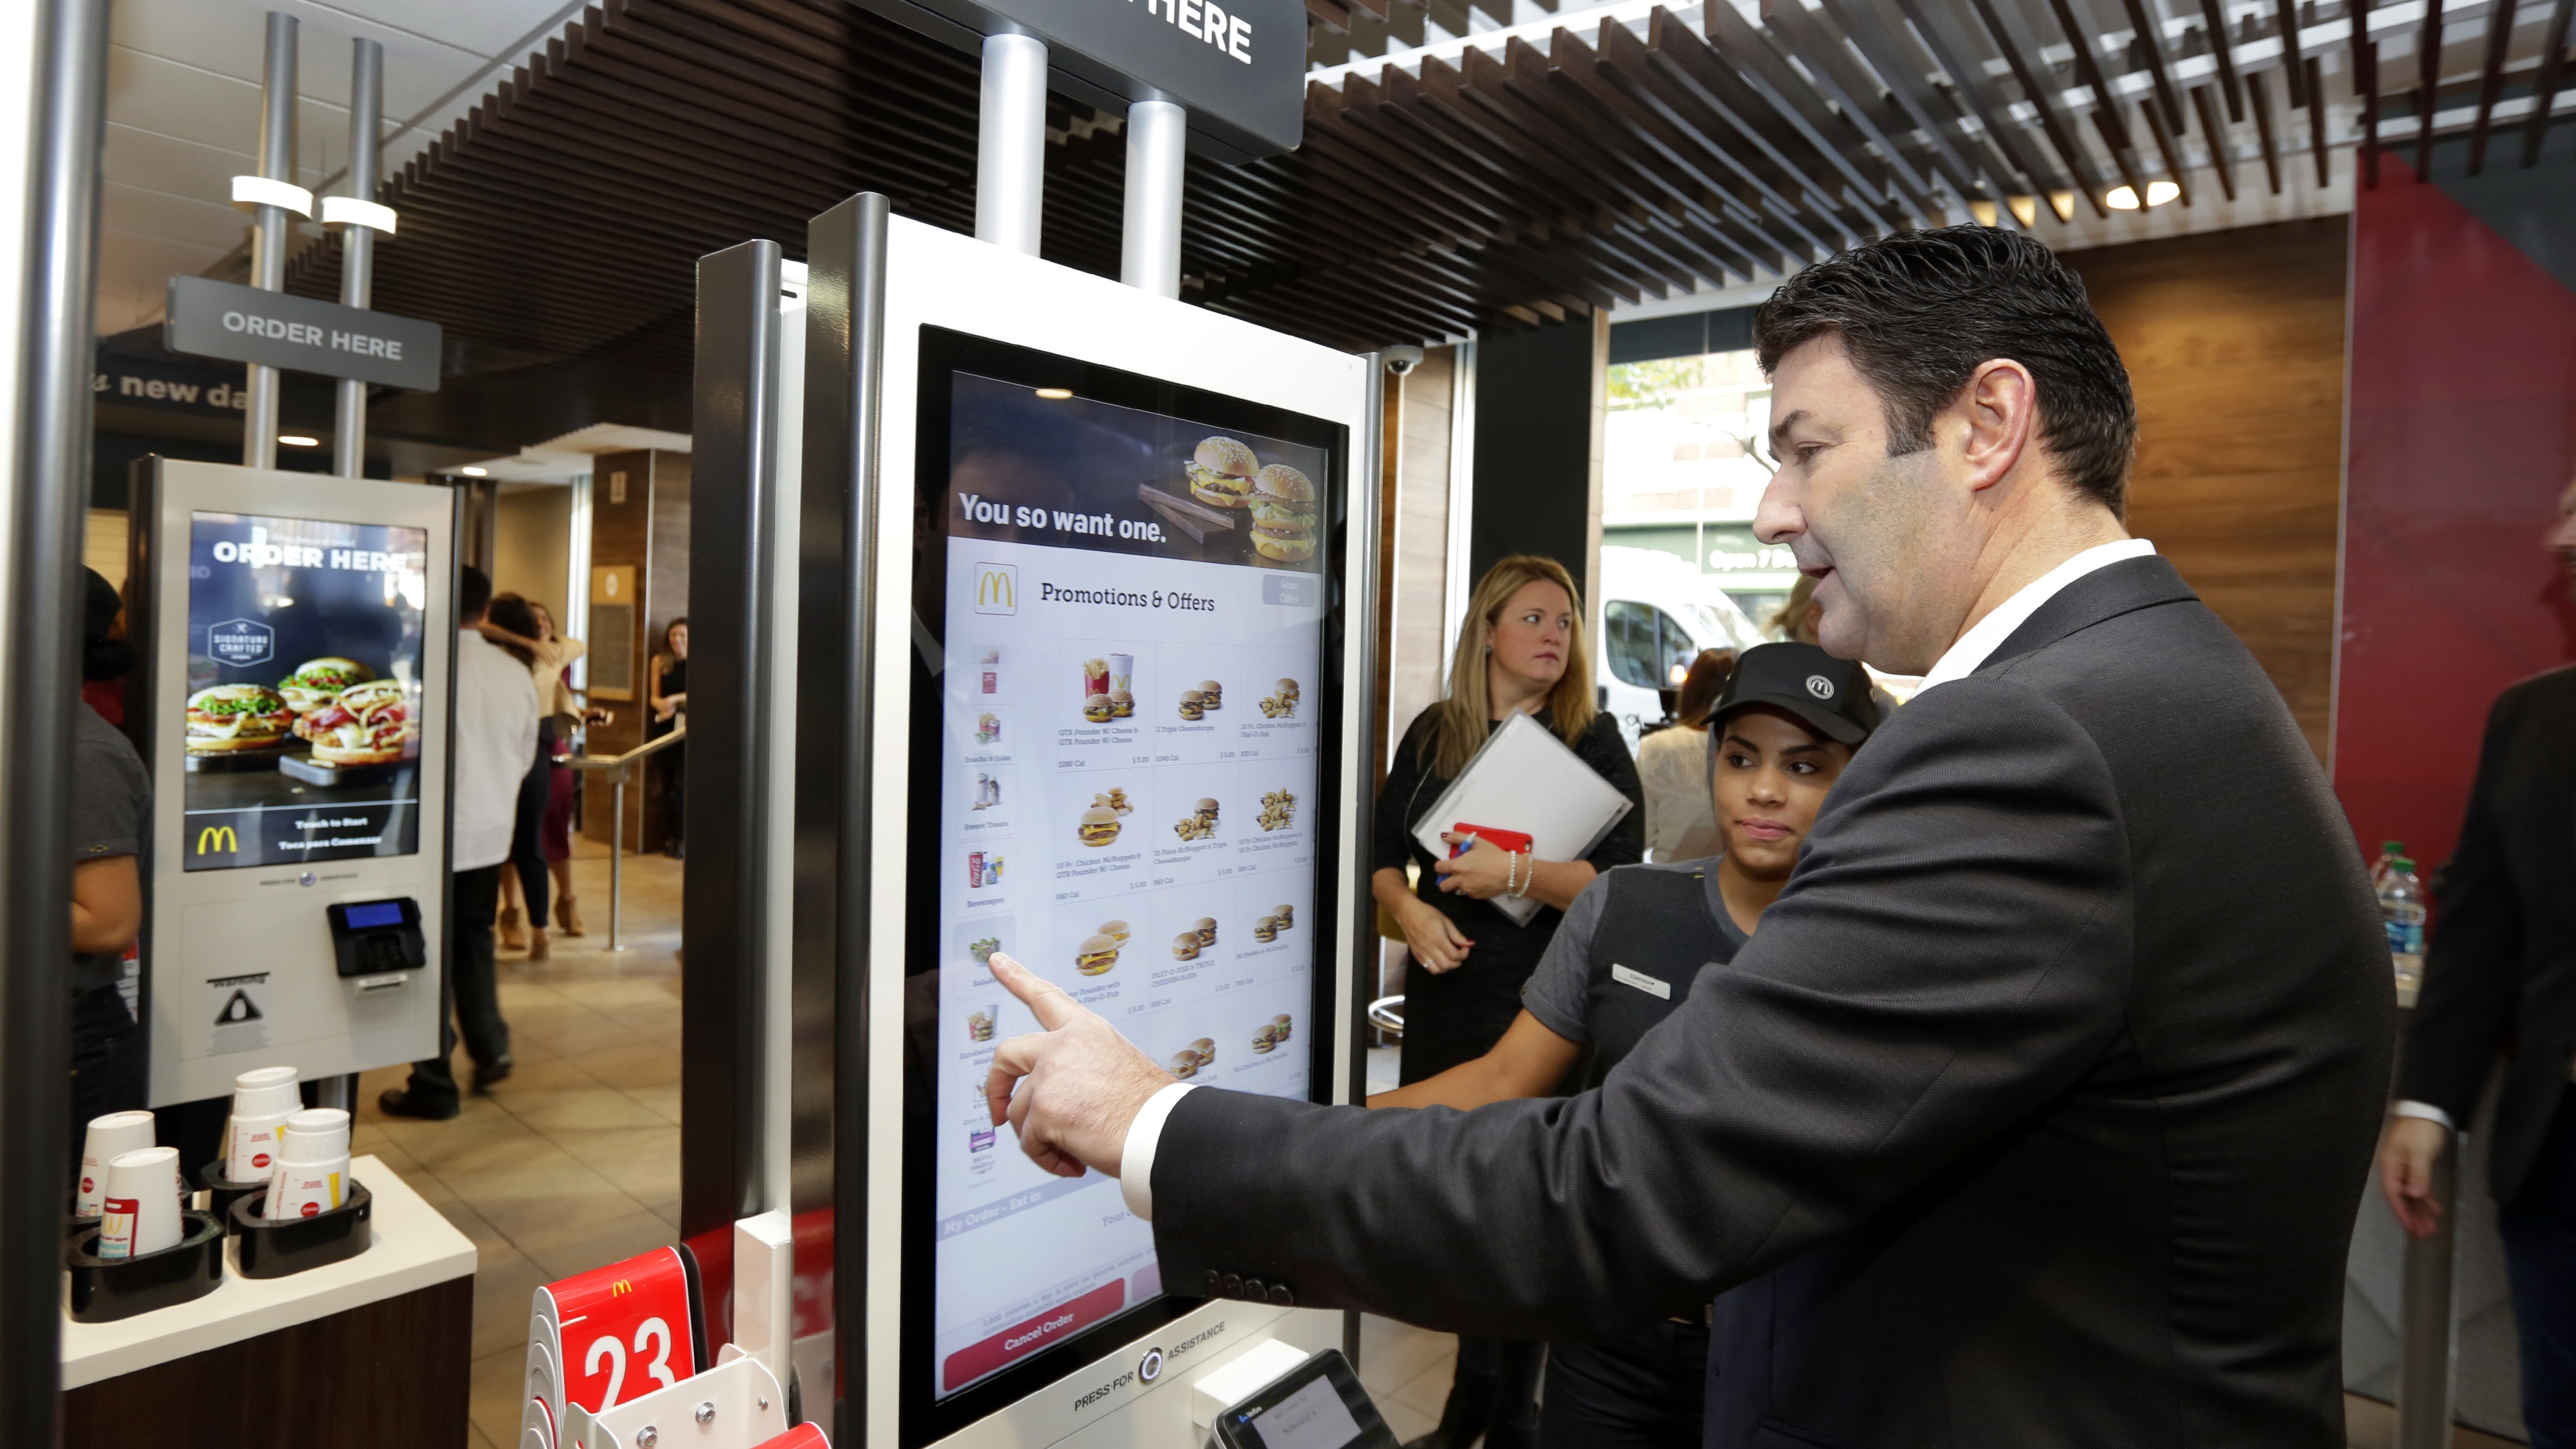 McDonald's CEO Steve Easterbrook demonstrates an order kiosk, with cashier Esmirna DeLeon, during a presentation at a McDonald's restaurant in New York's Tribeca neighborhood, Thursday, Nov. 17, 2016. On Thursday, the company said it wants to makes its fast-food outlets feel more like restaurants, with plans to eventually expand table service across its U.S. locations. (AP Photo/Richard Drew)